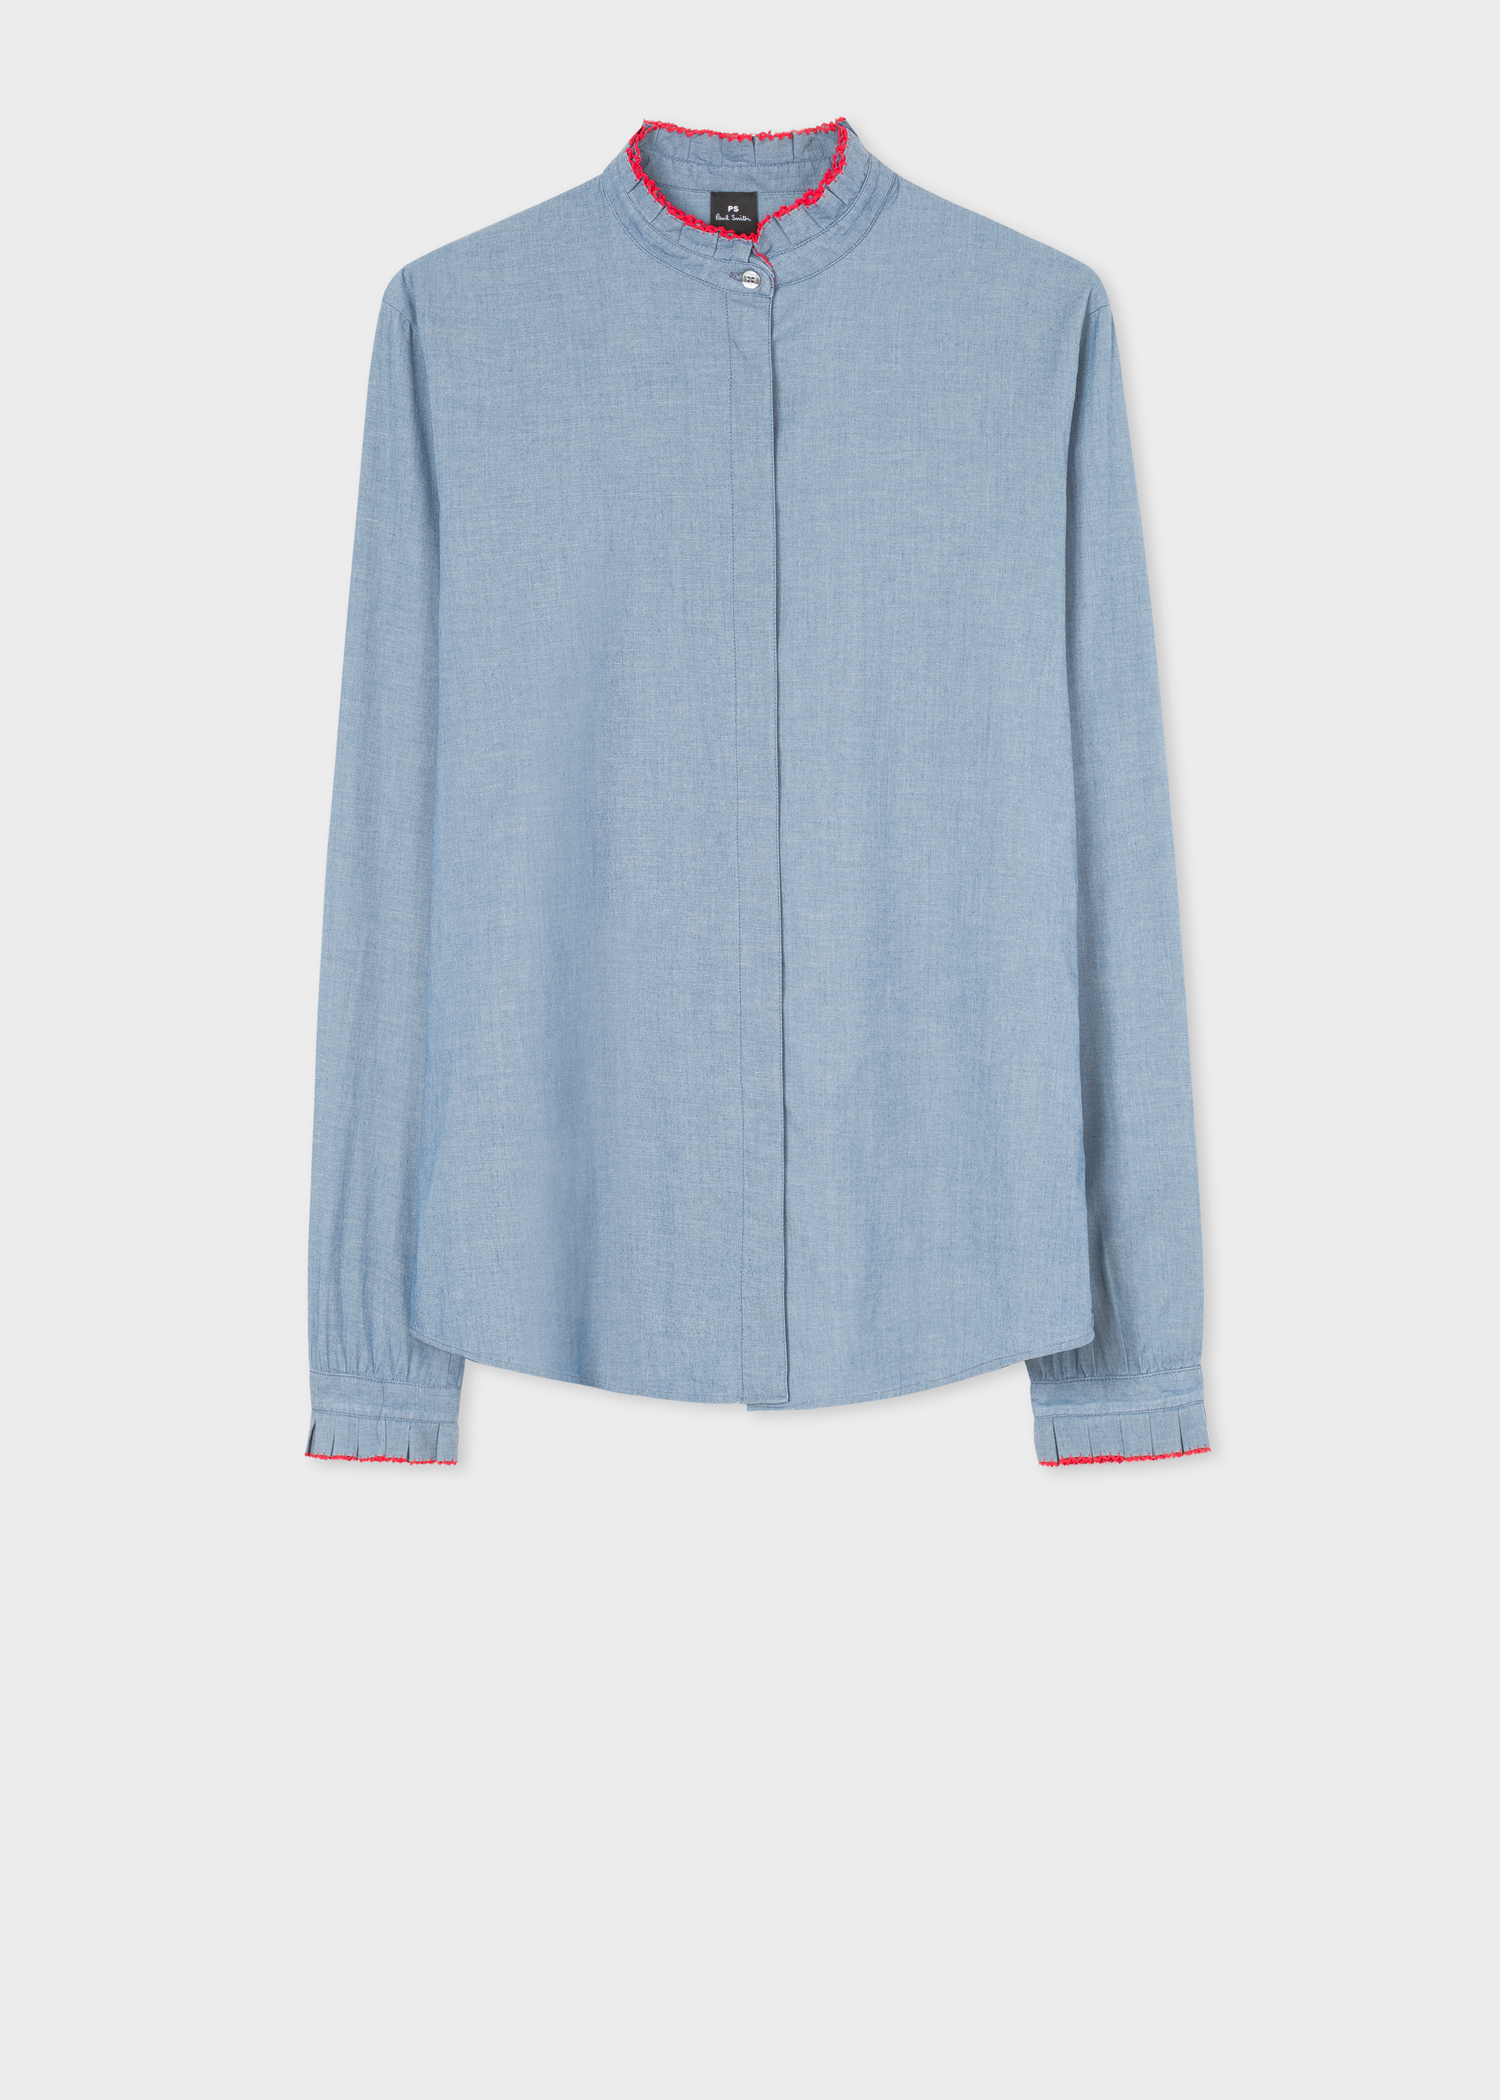 7b5286a4358 Fornt view - Women s Chambray Stretch-Cotton Shirt With Contrast Ruffle  Trims Paul Smith